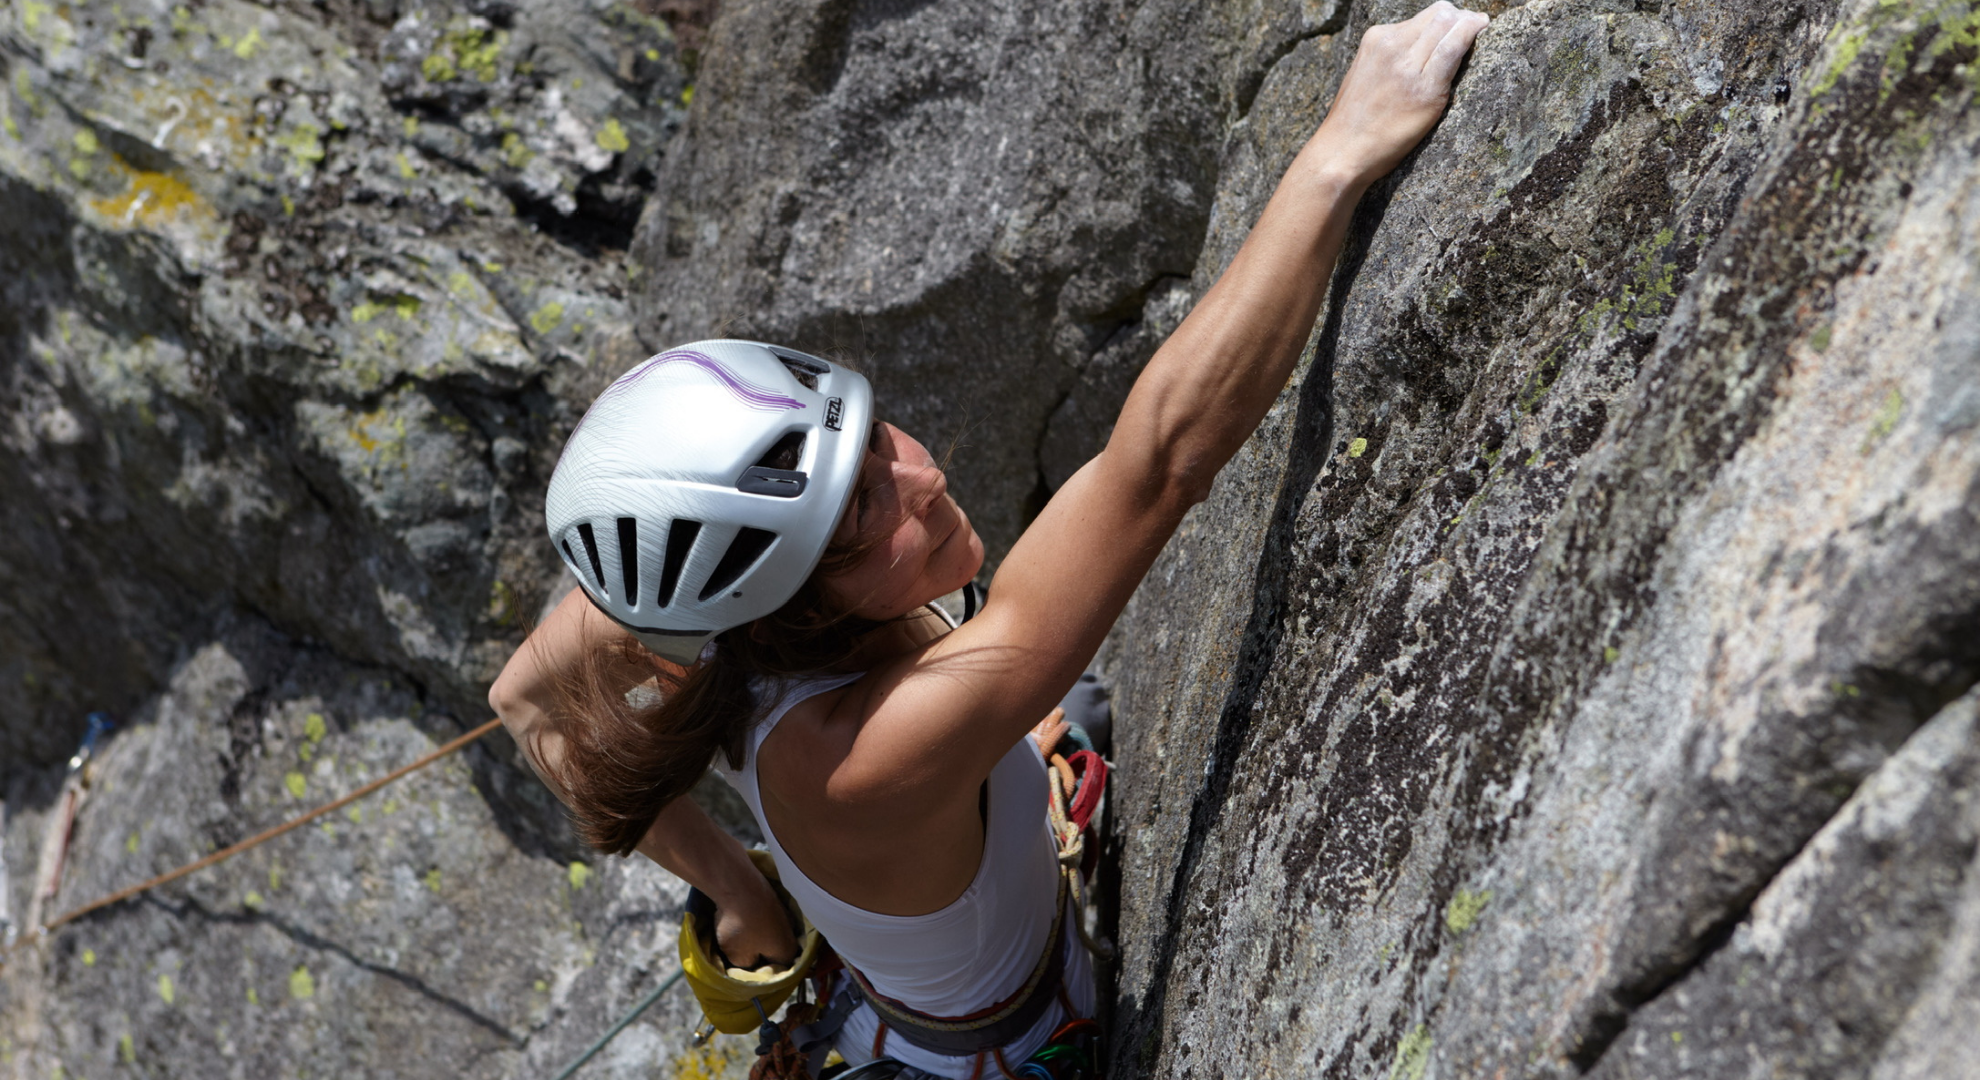 Develop Your Climbing During Lockdown - 10 Top tips from Coach Esther Foster